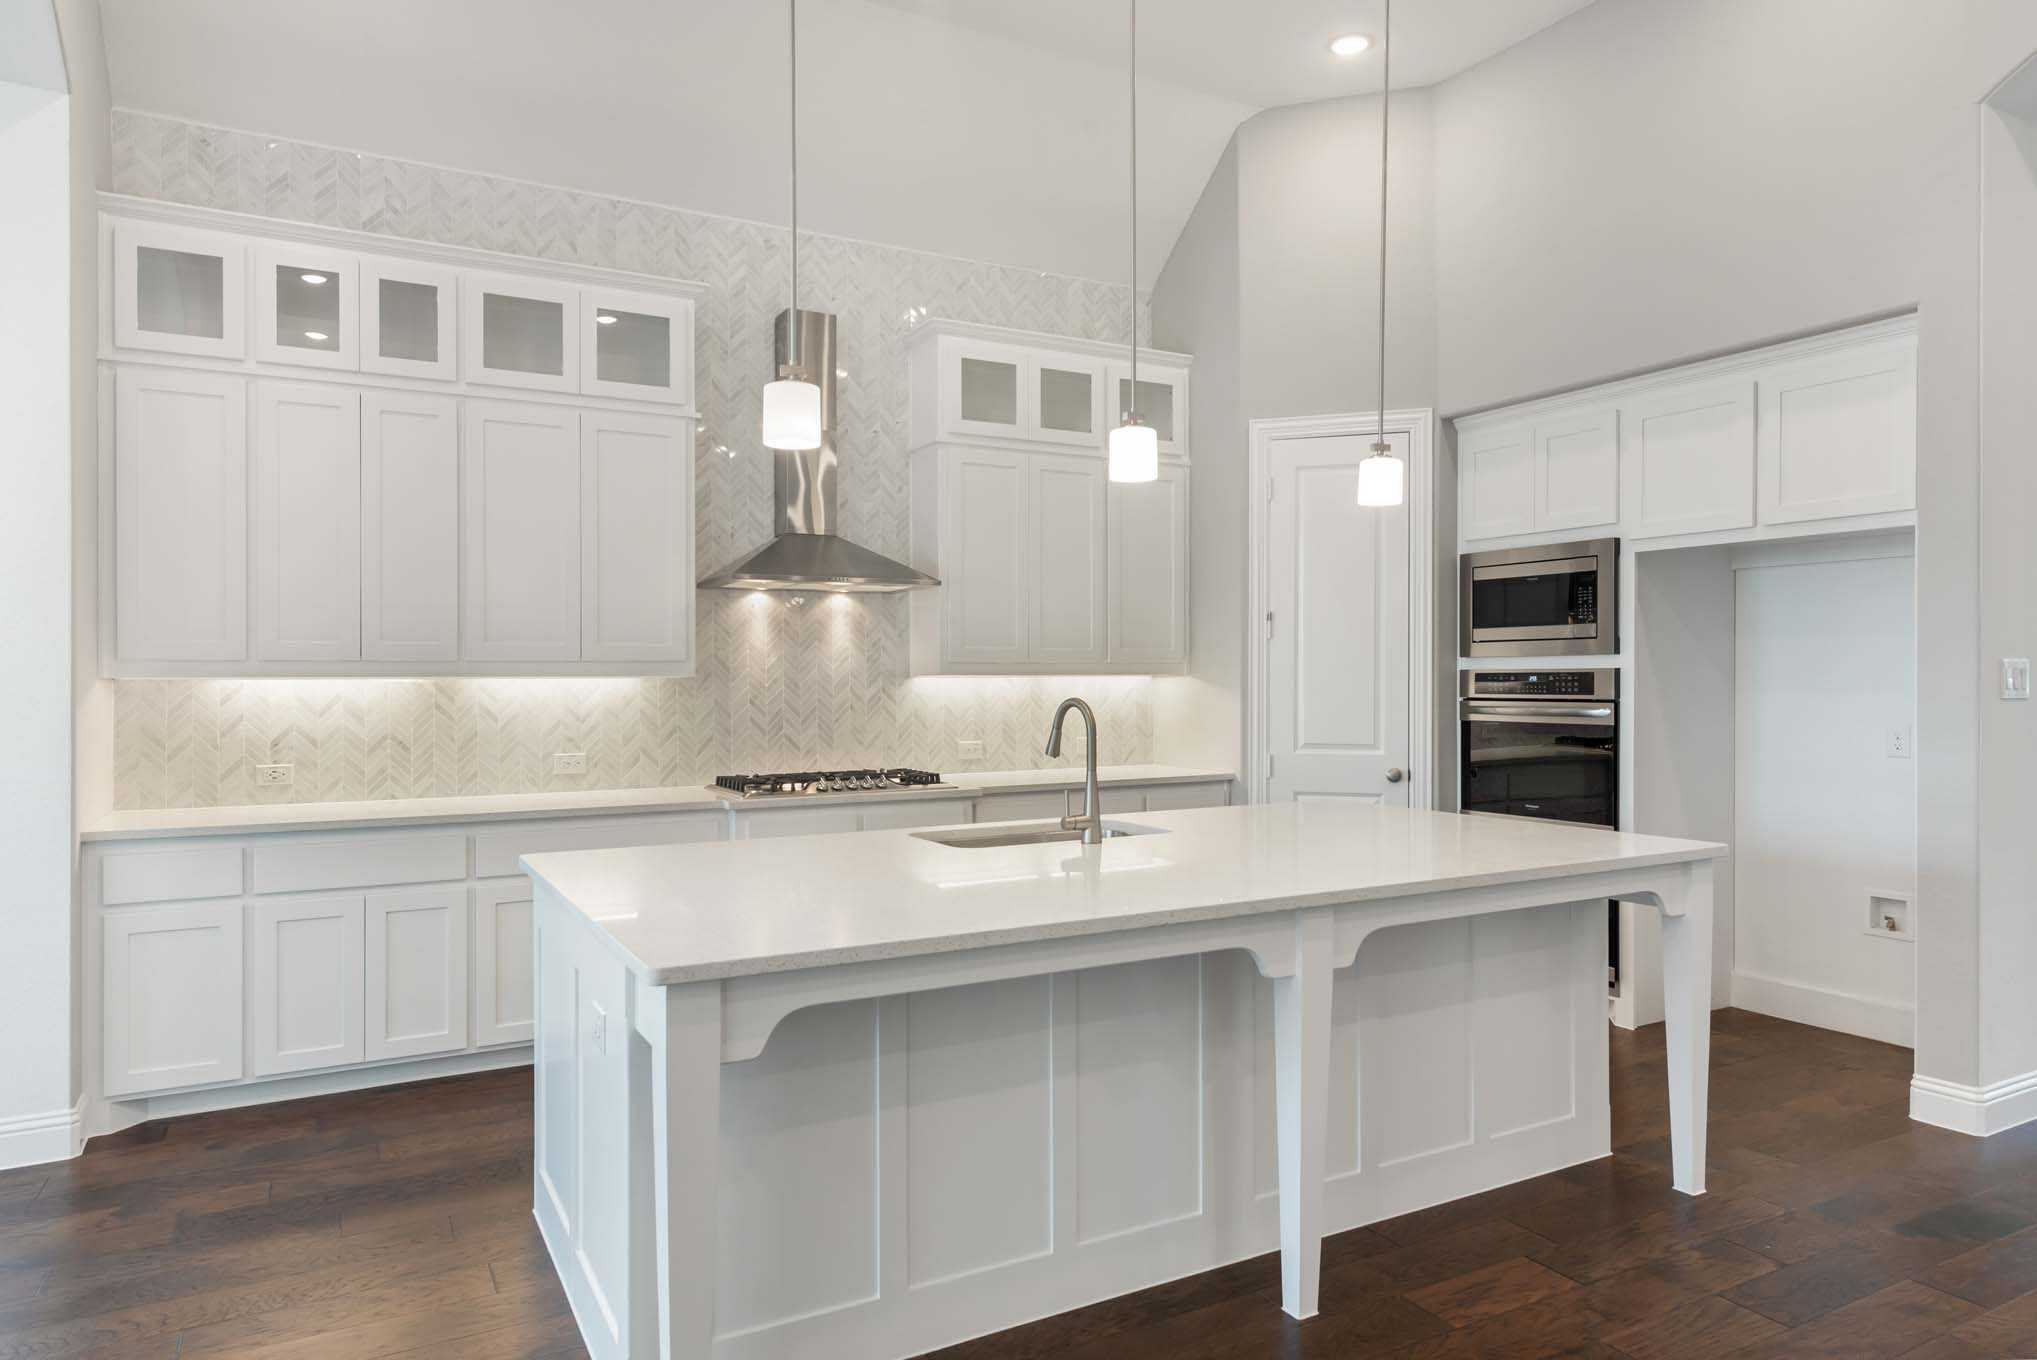 Kitchen featured in the Plan 217 By Highland Homes in San Antonio, TX